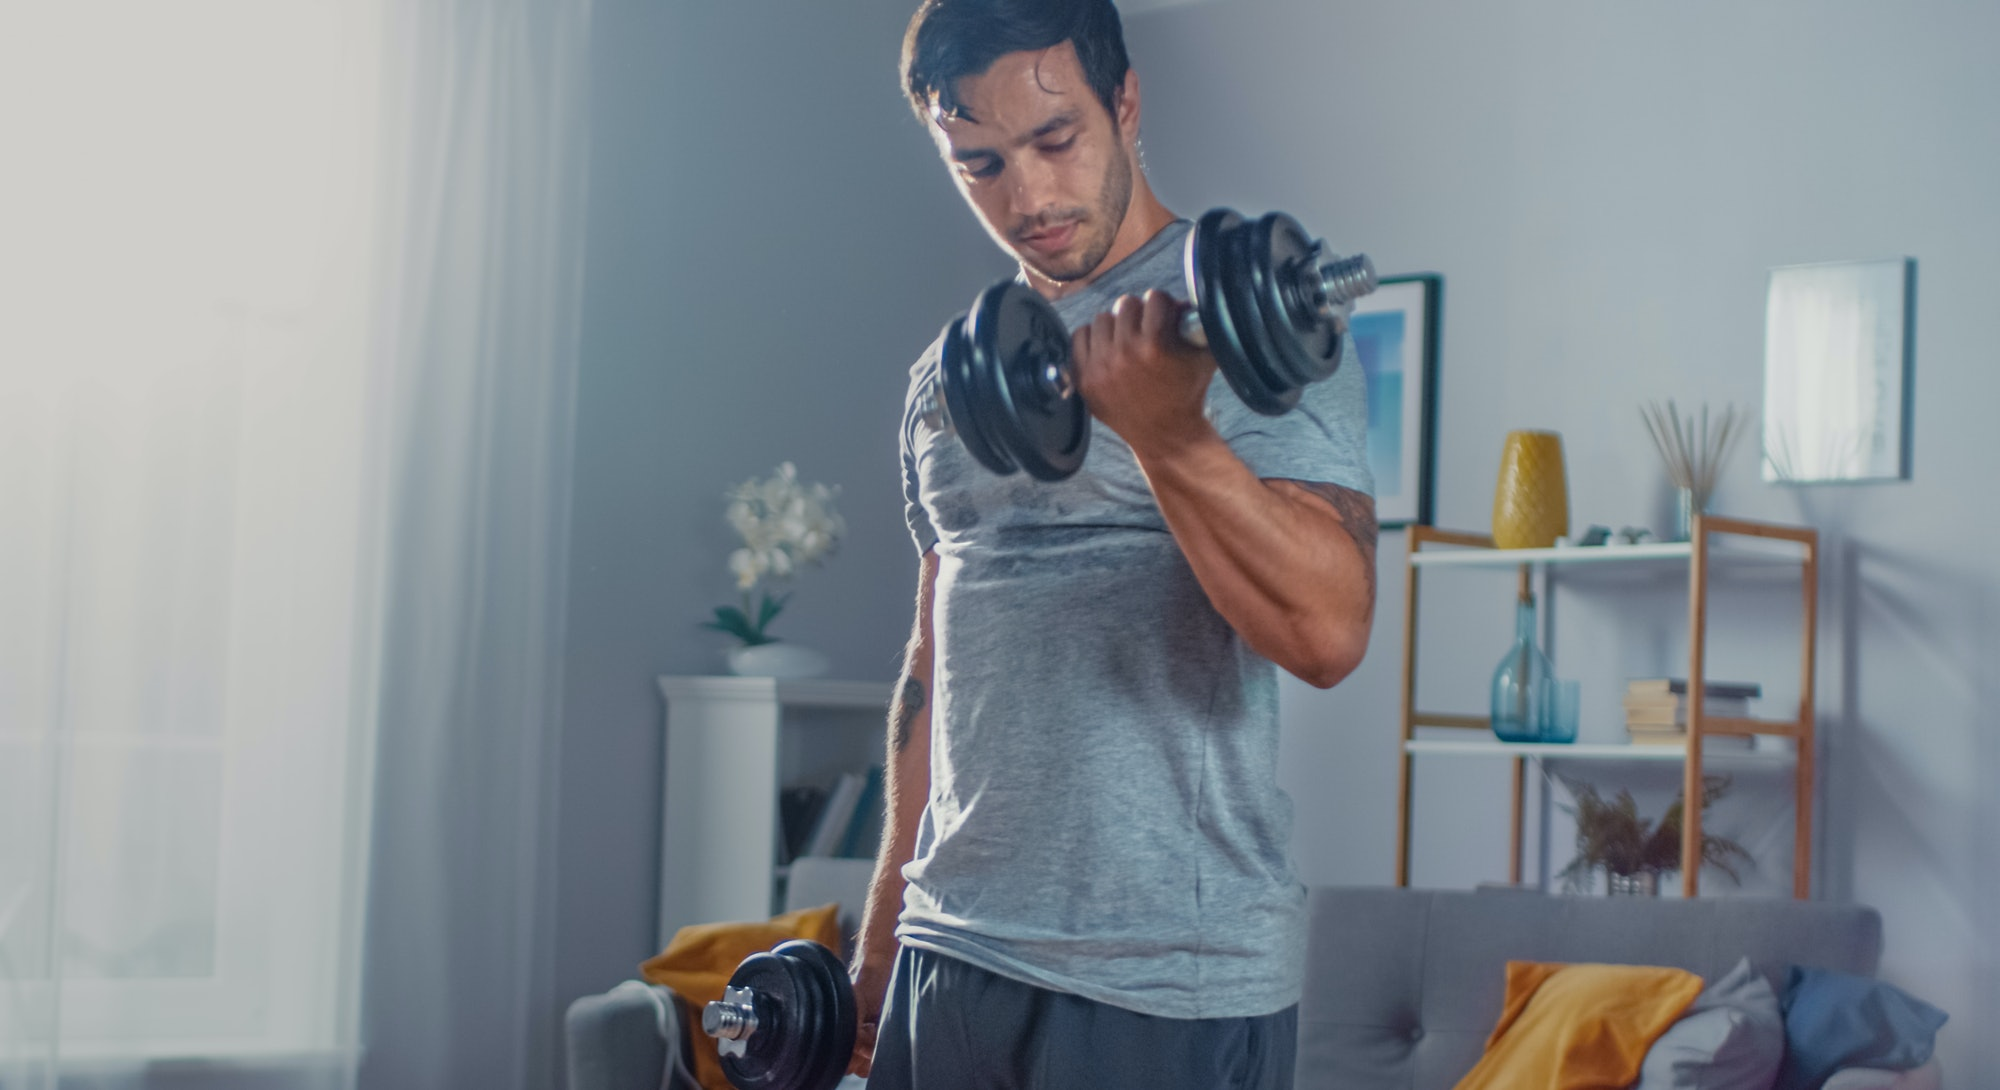 Strong Athletic Fit Man in T-shirt and Shorts is Doing Calf Raise Exercises with Dumbbells at Home in His Spacious and Bright Apartment with Minimalistic Interior.